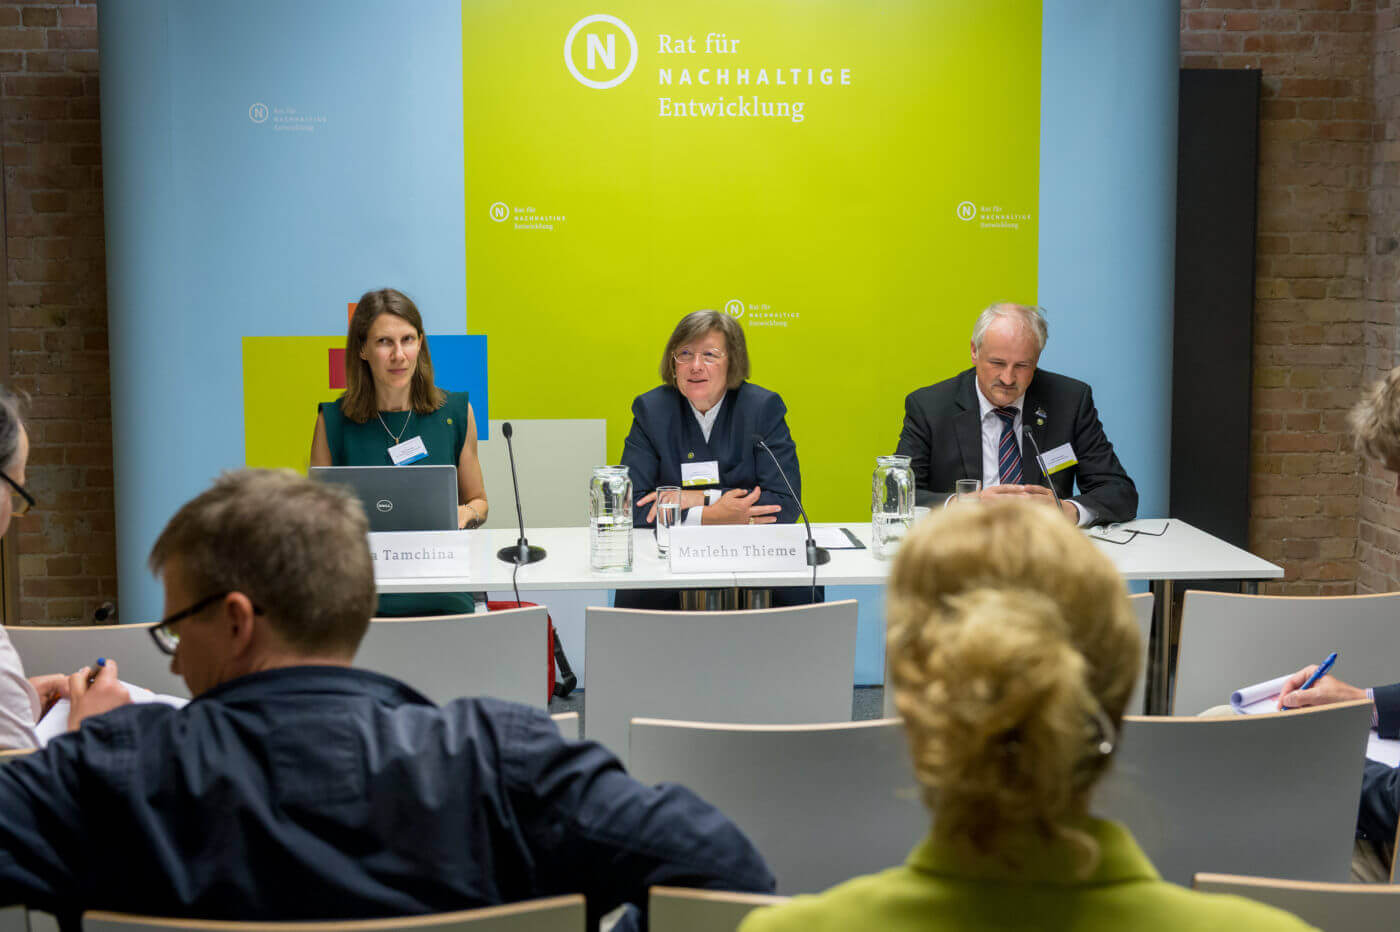 Press conference at the 2016 RNE Annual Conference. Photo: Svea Pietschmann, © German Council for Sustainable Development